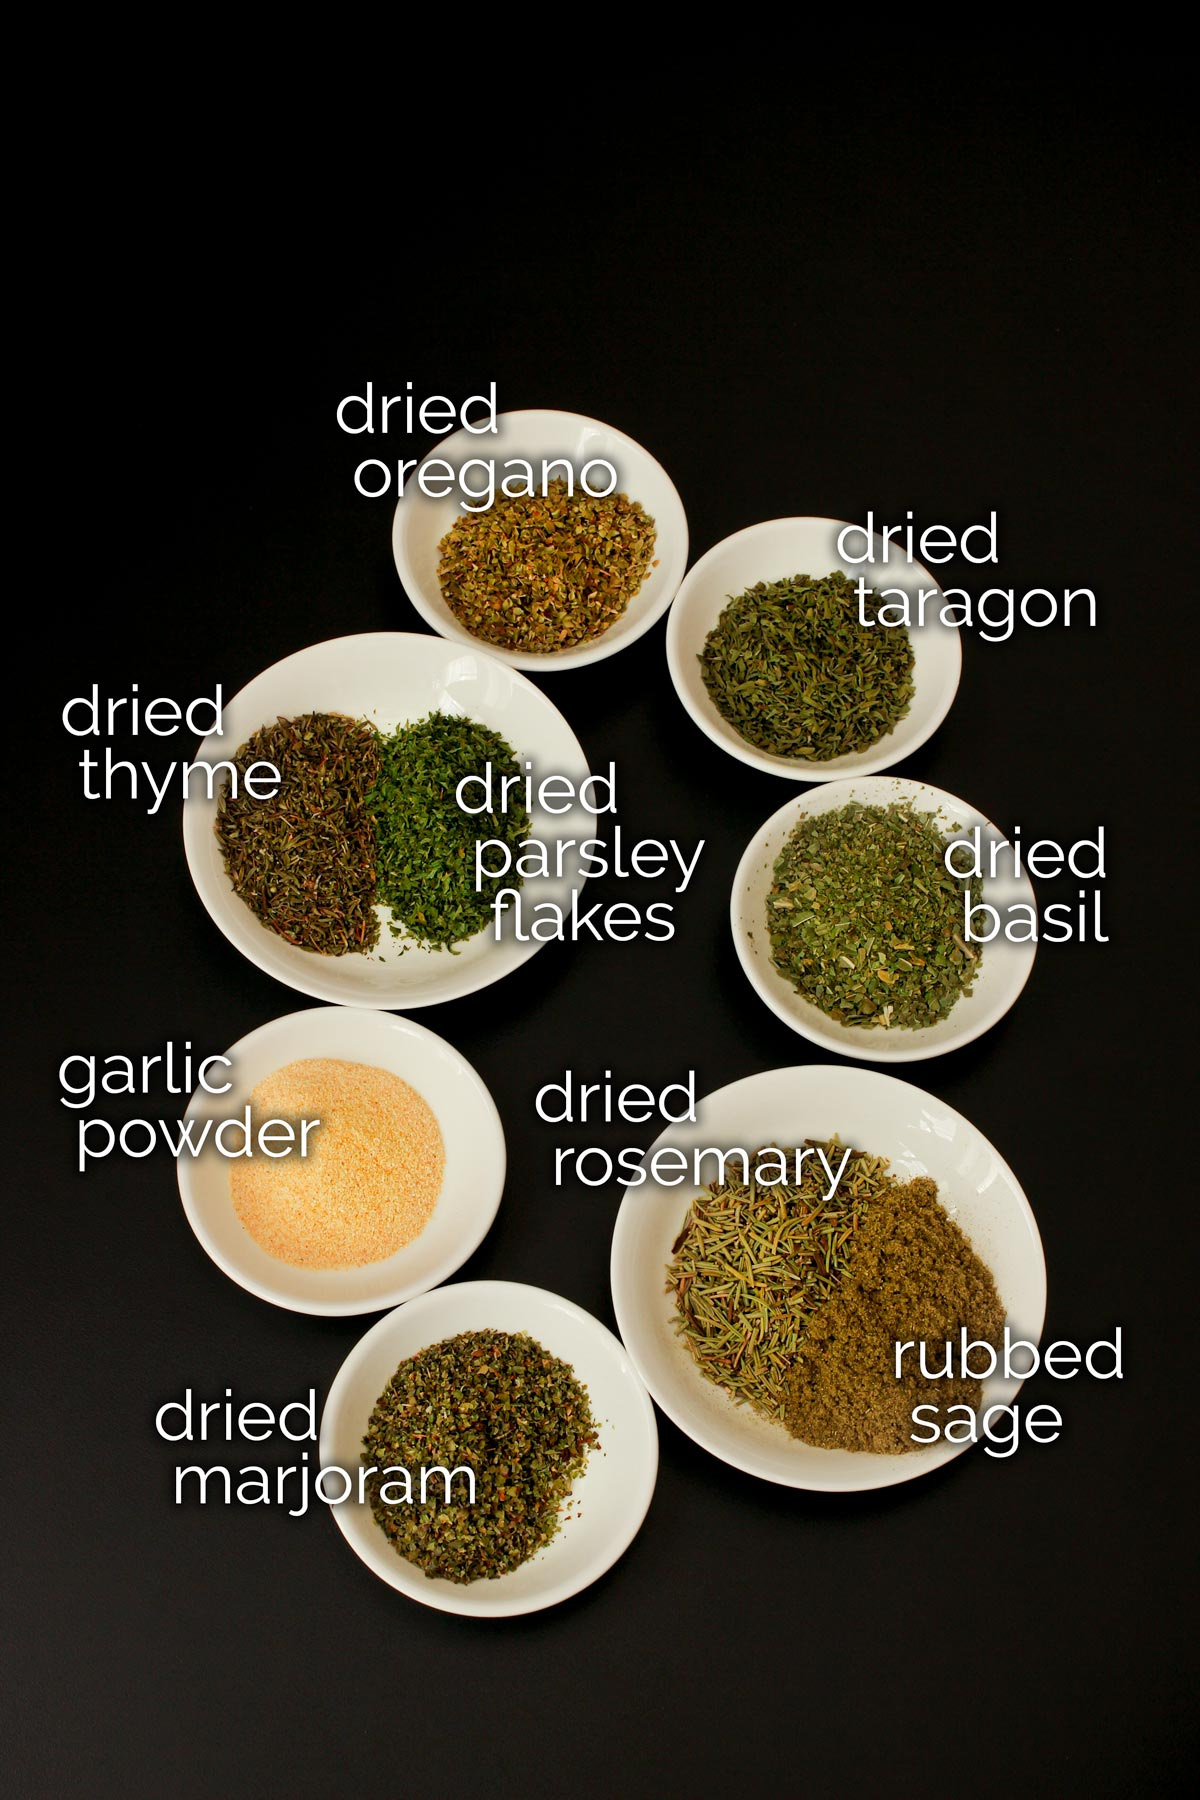 ingredients for Italian seasoning mix laid out in small white dishes on black table top.